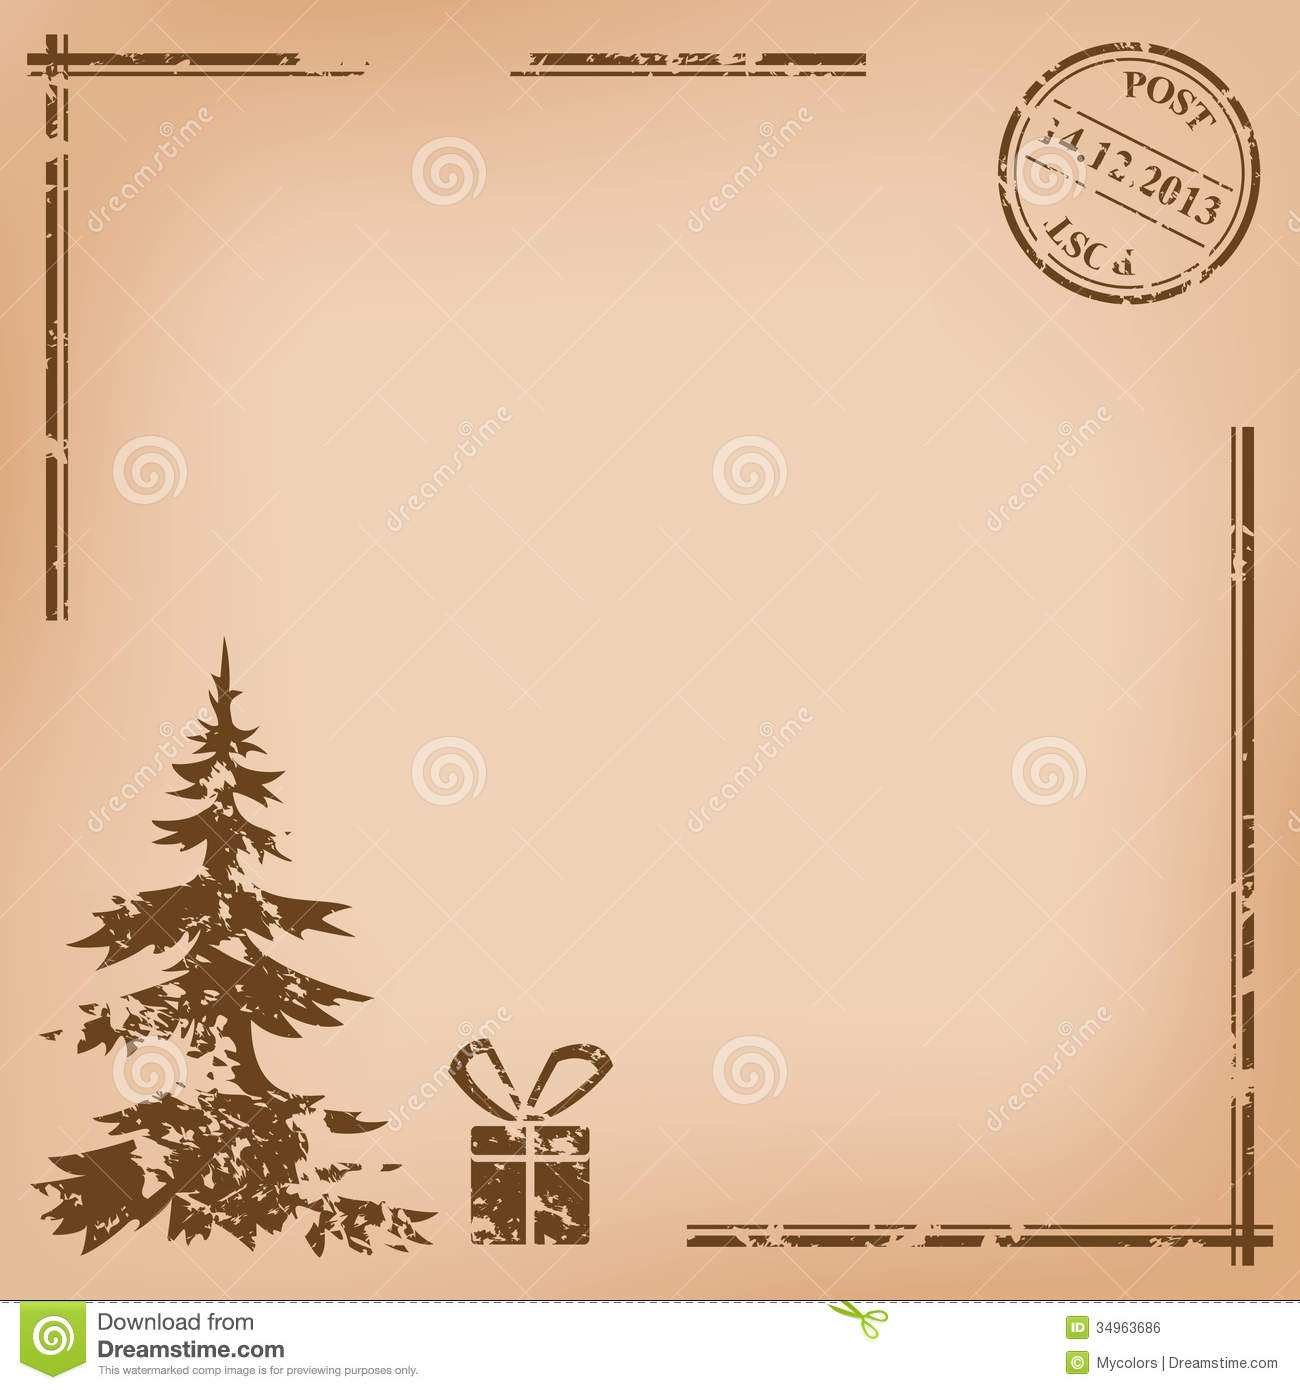 Old vintage vector postcard for christmas royalty free